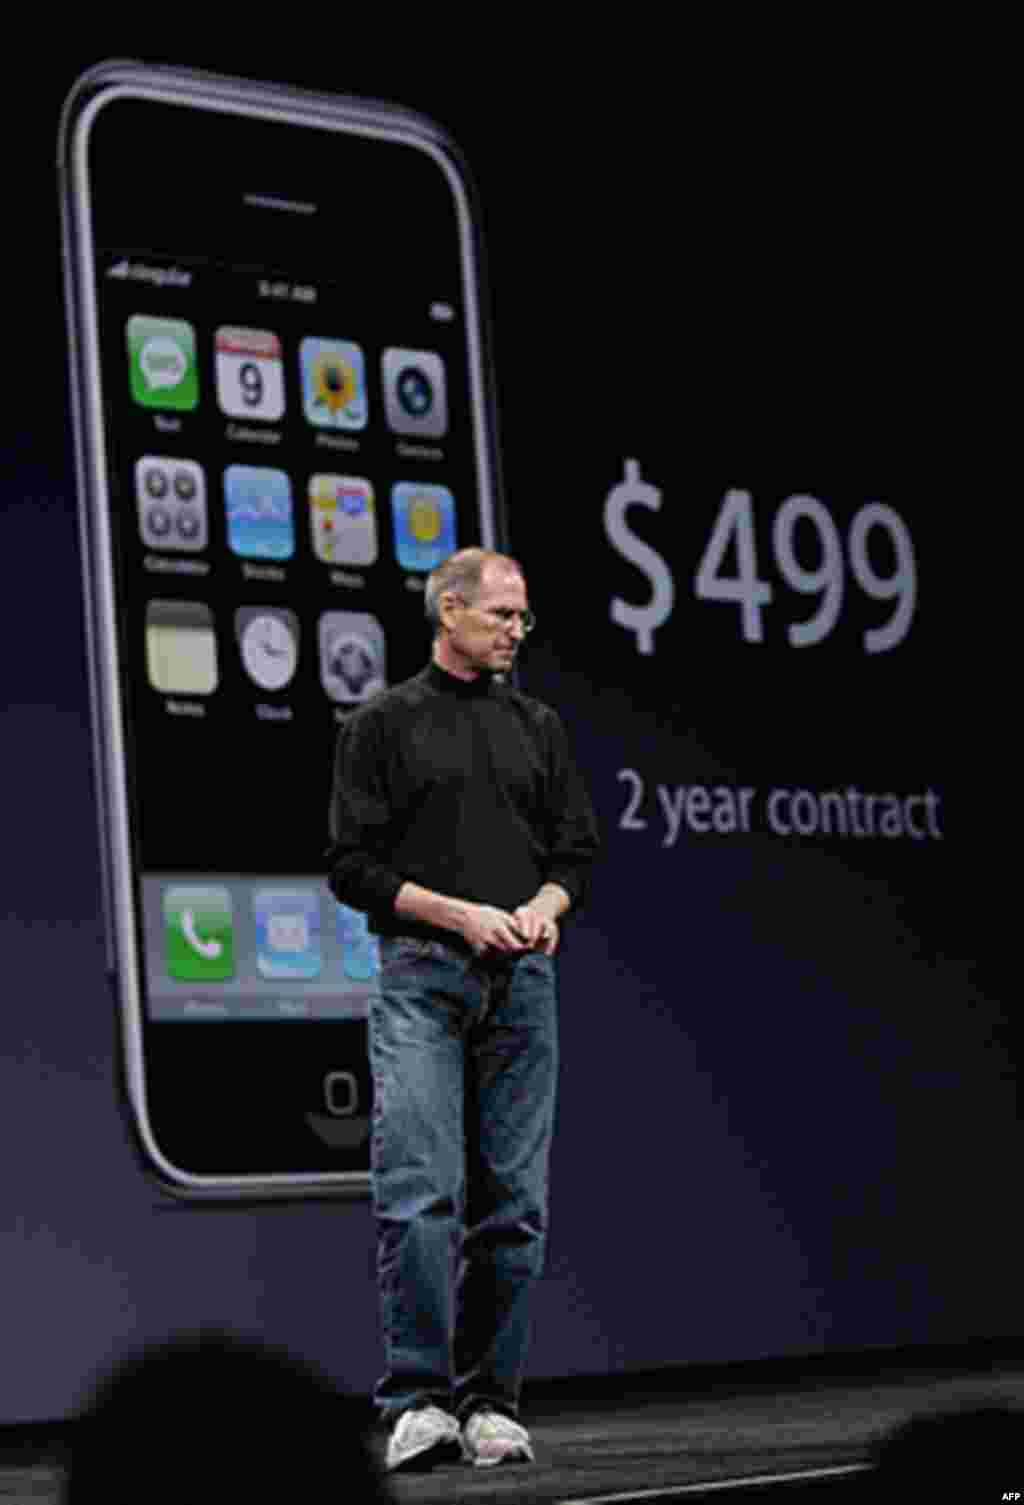 Steve Jobs demonstrates the new iPhone during his keynote address at MacWorld Conference & Expo in San Francisco, California, January. 9, 2007. (AP)